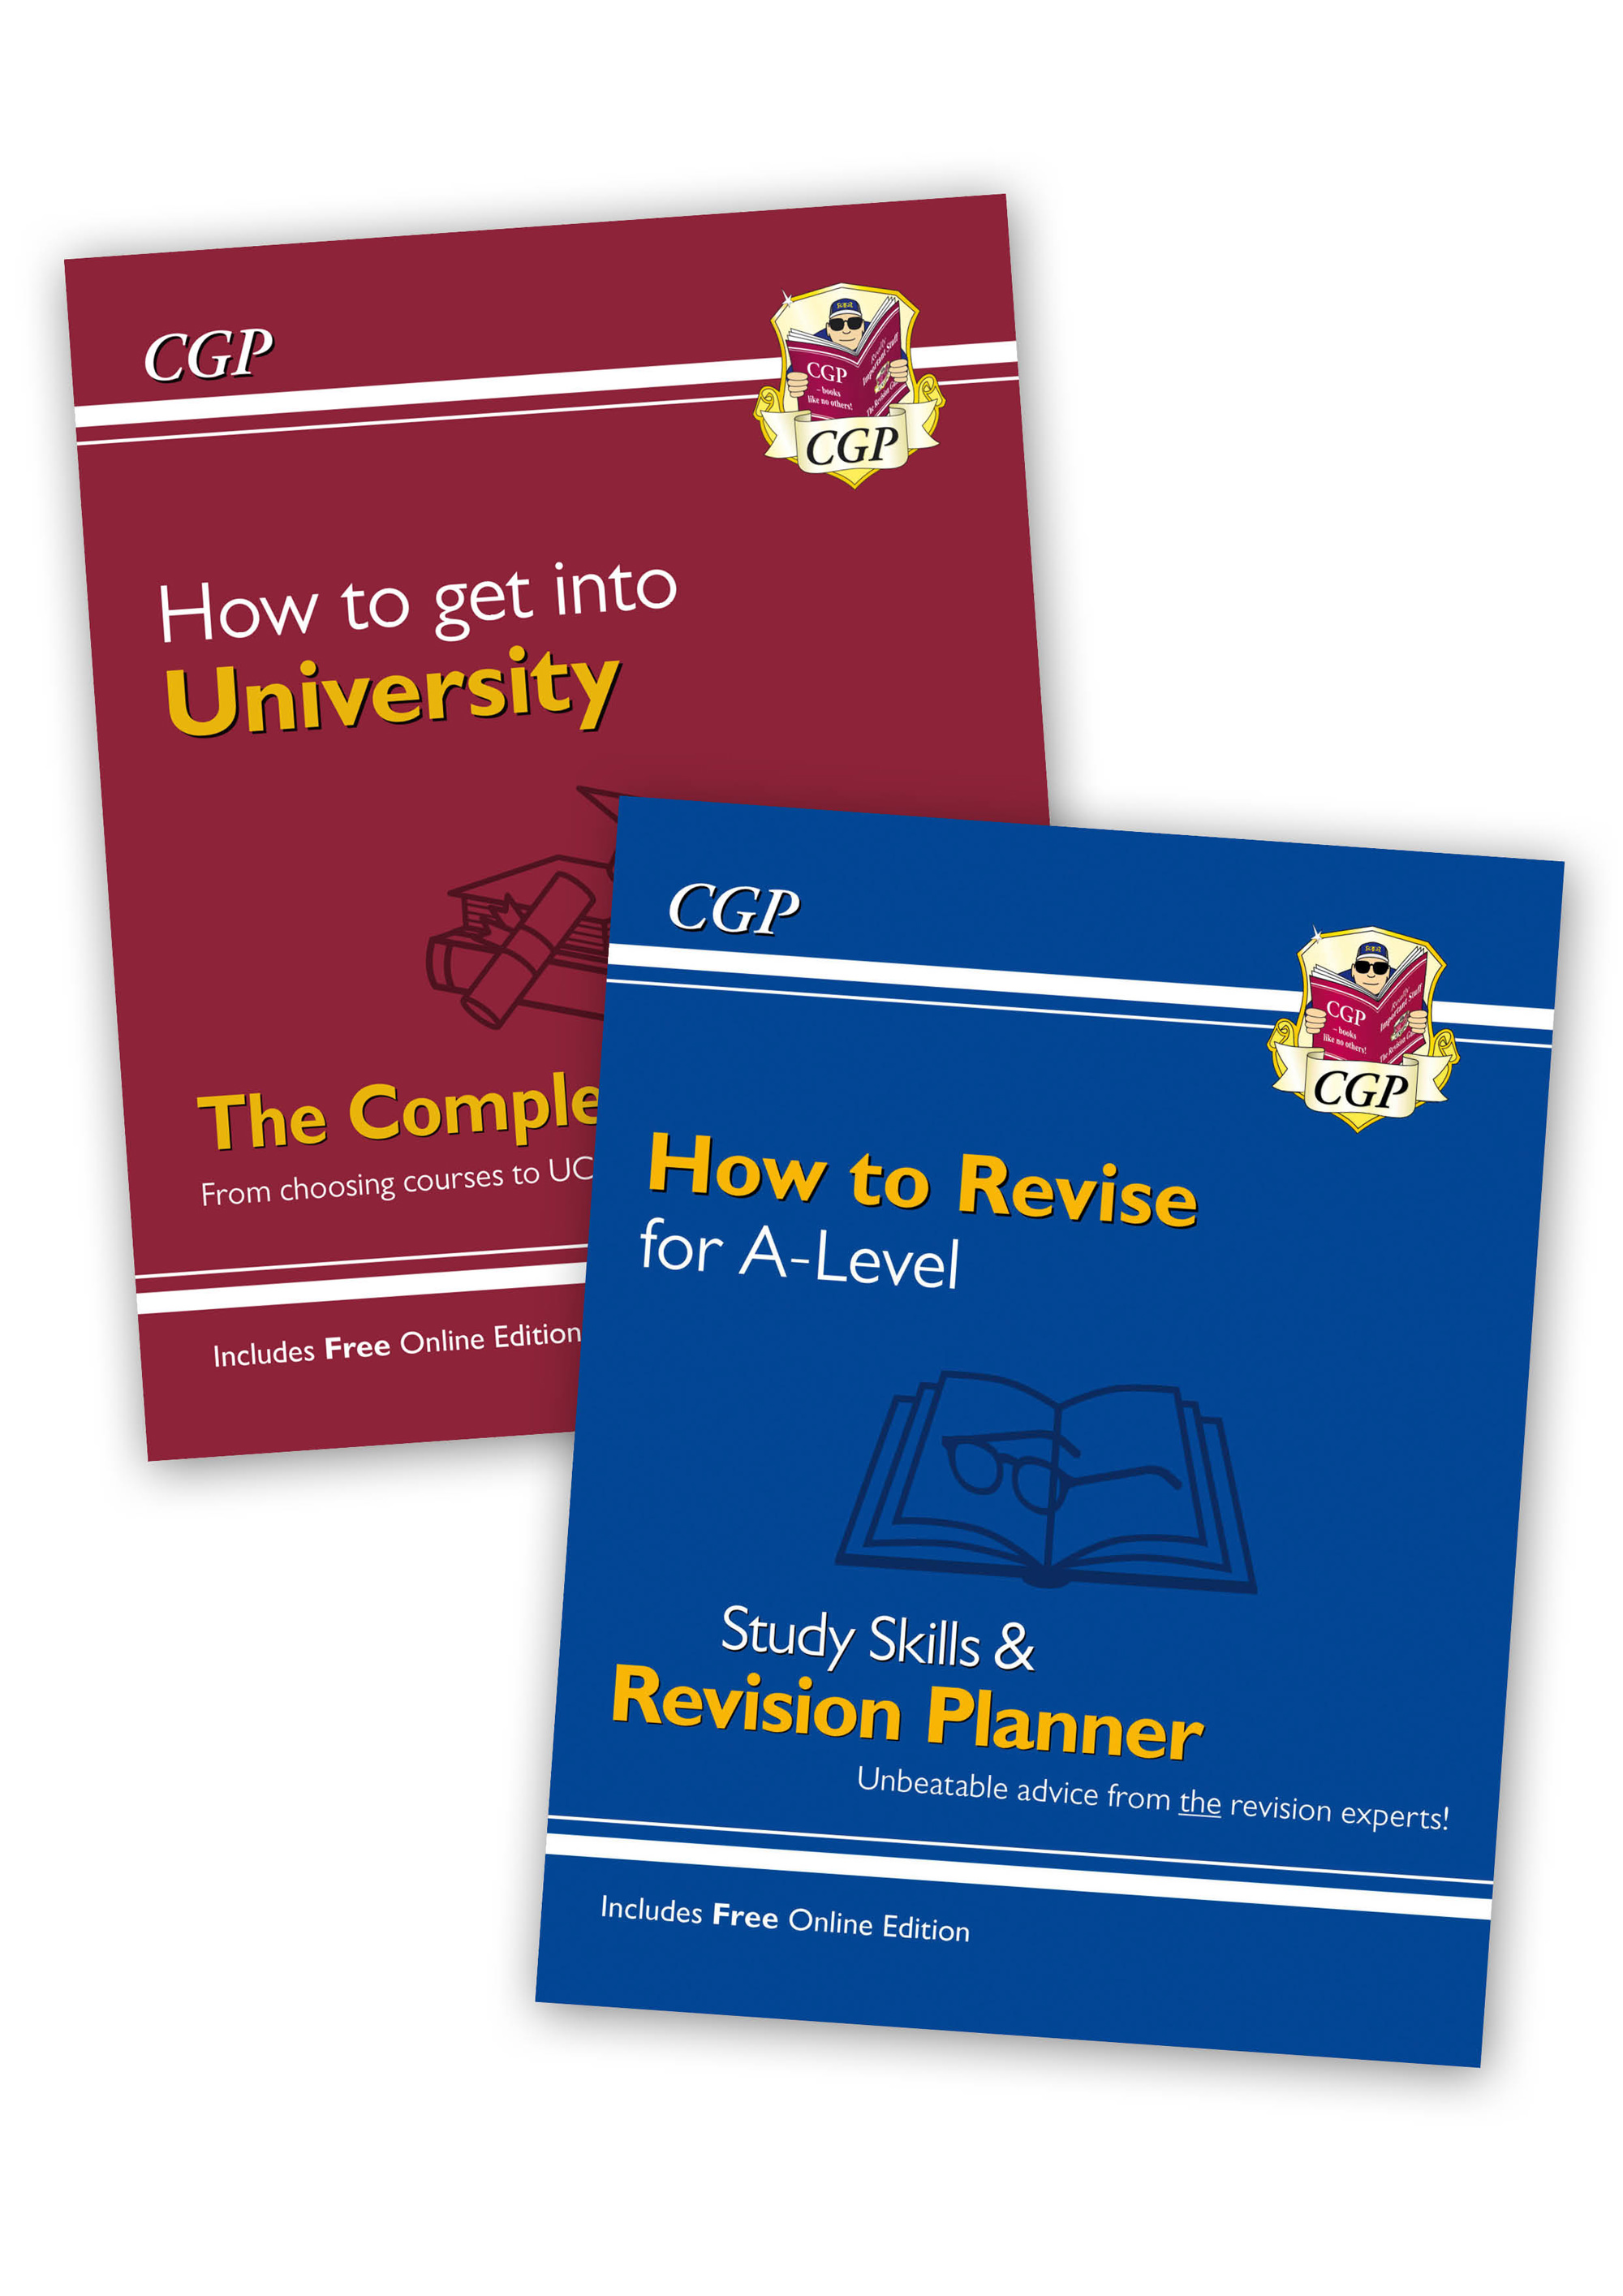 XHRB71 - How to Revise for A-Level and How to get into University - 2 Book Bundle